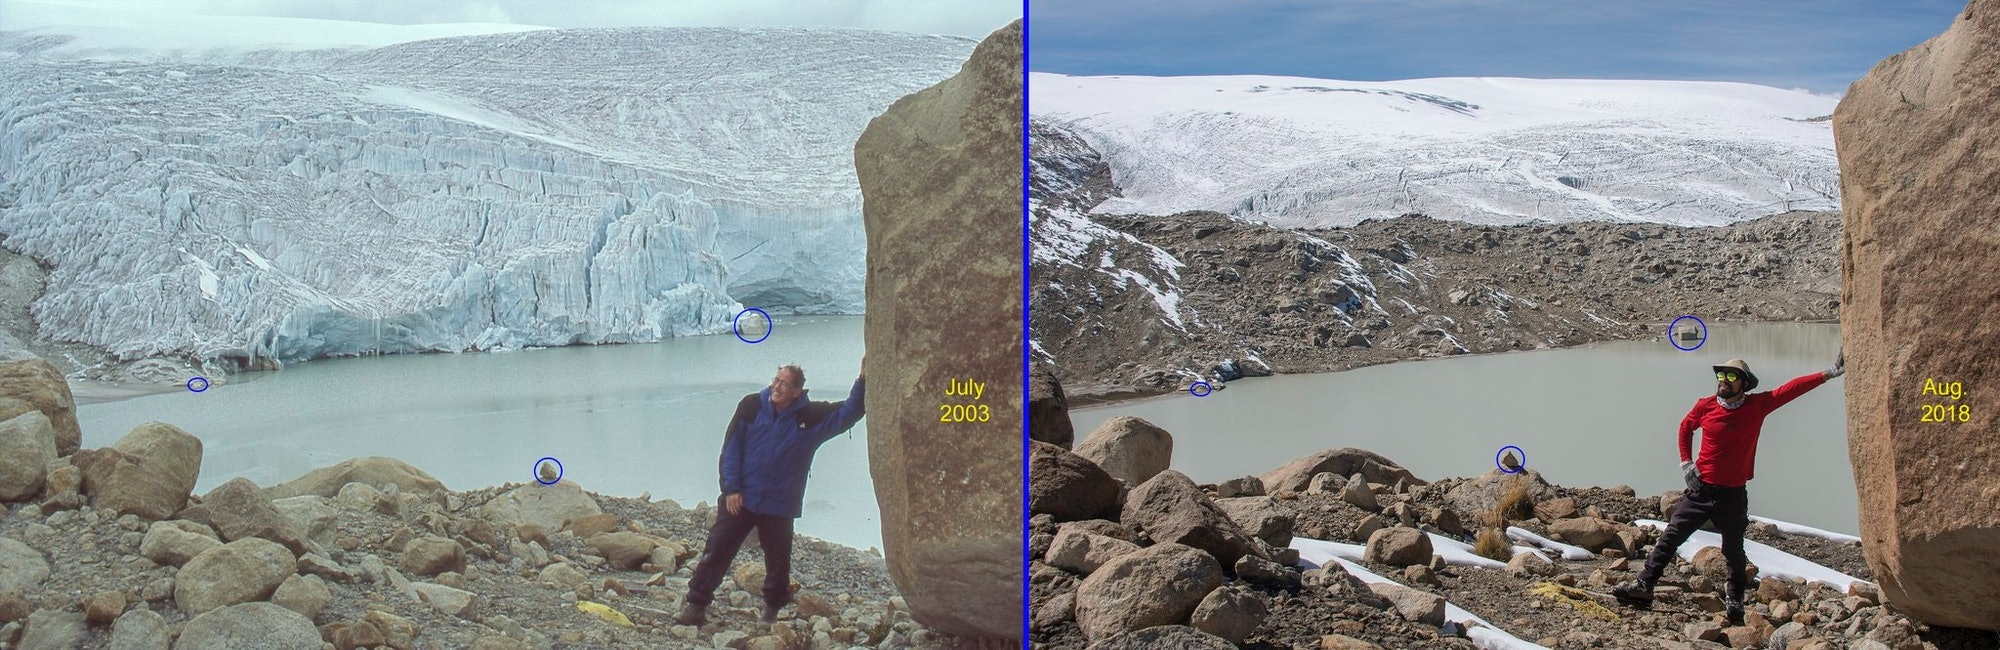 world's largest tropical ice cap at Quelccaya, Peru